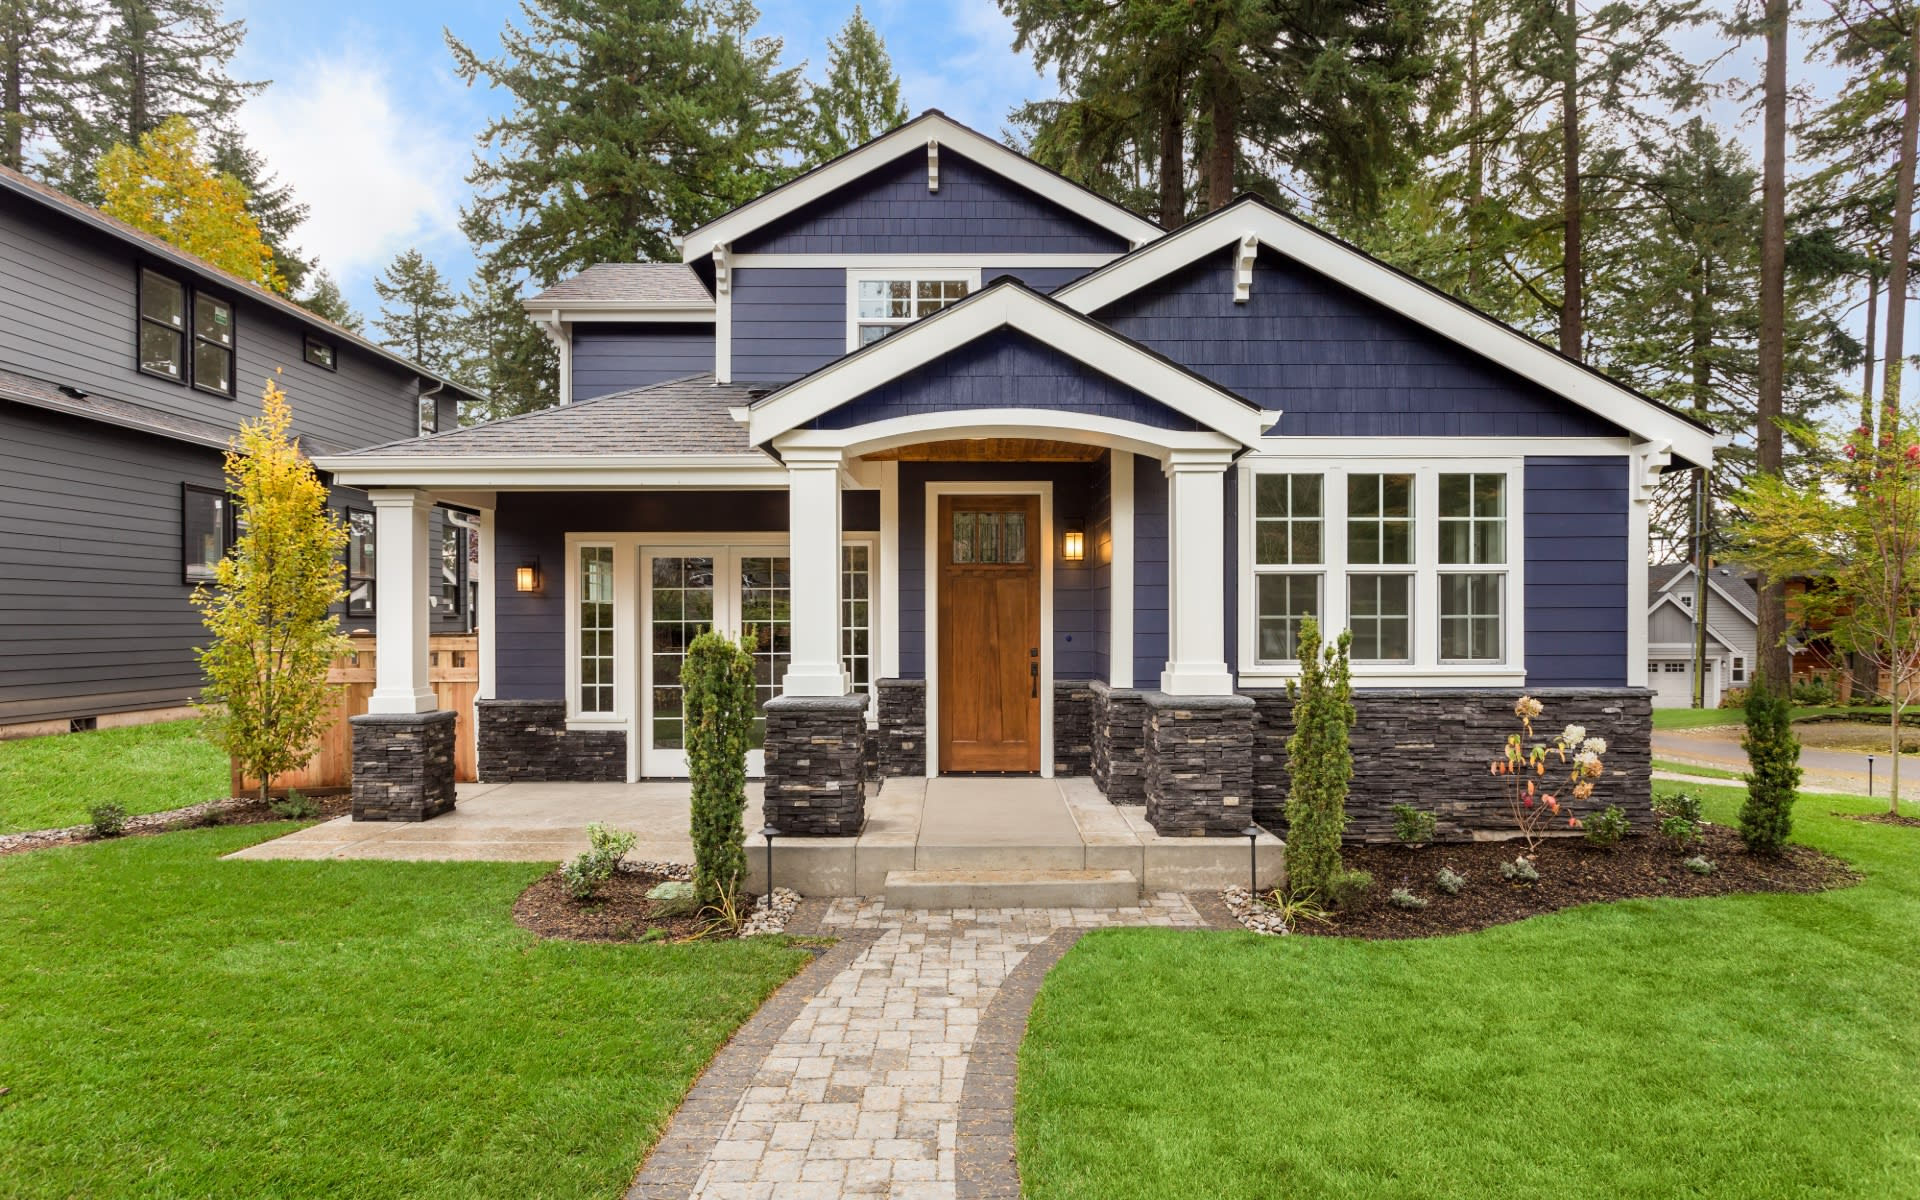 Home Search image